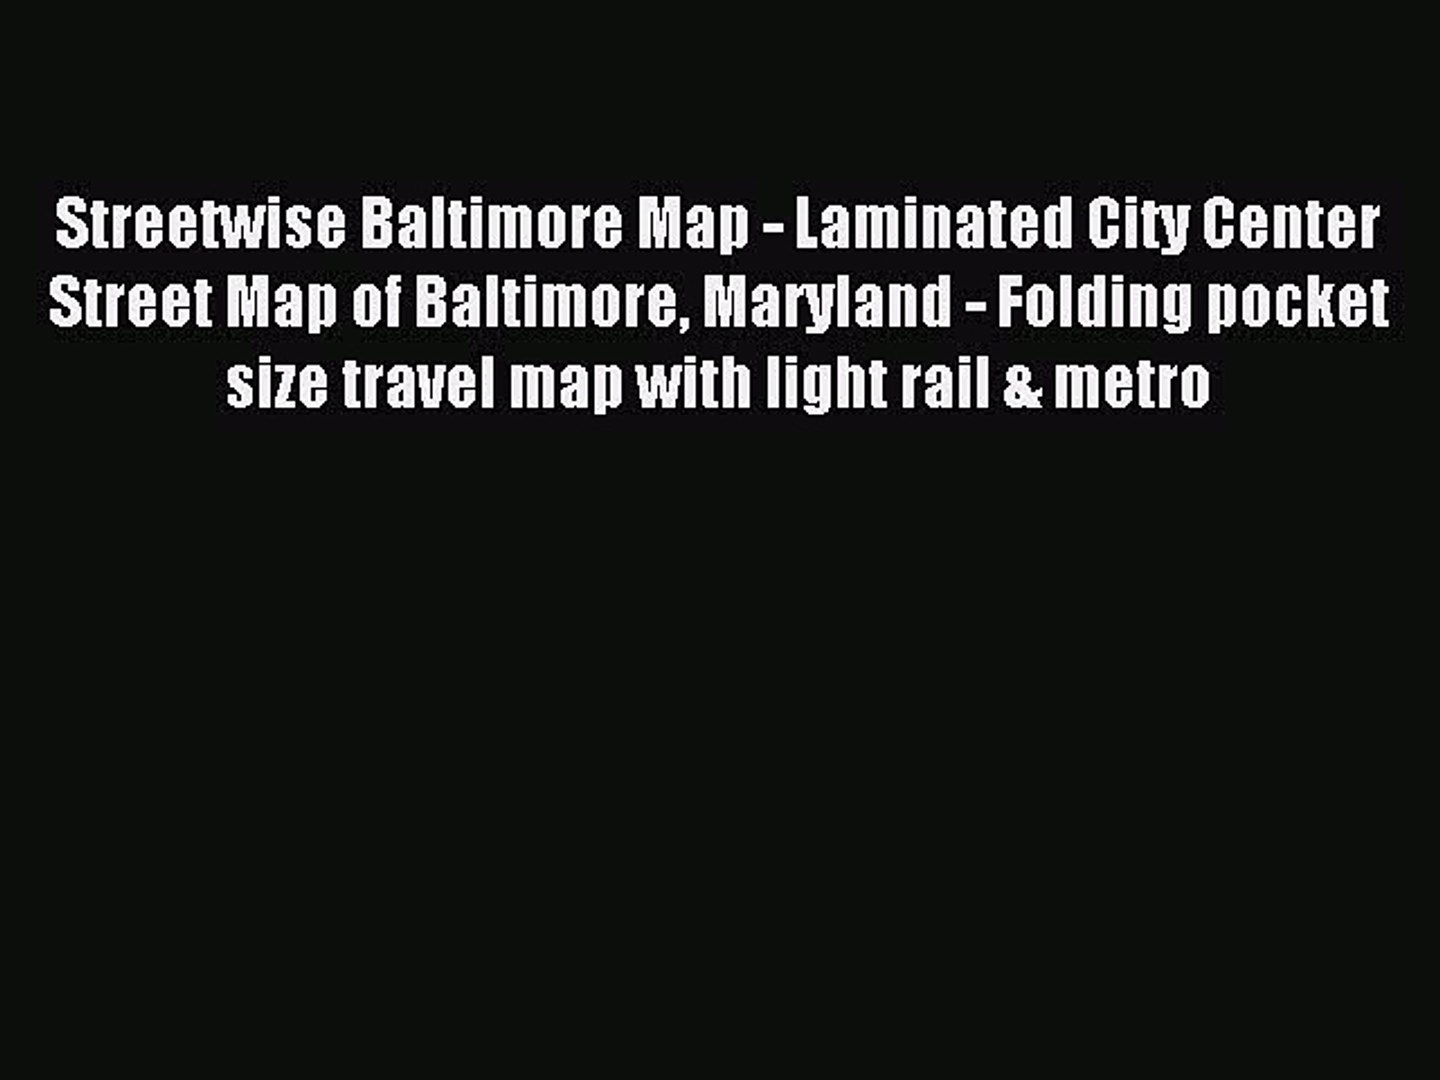 Streetwise Baltimore Map Maryland Laminated City Center Street Map of Baltimore